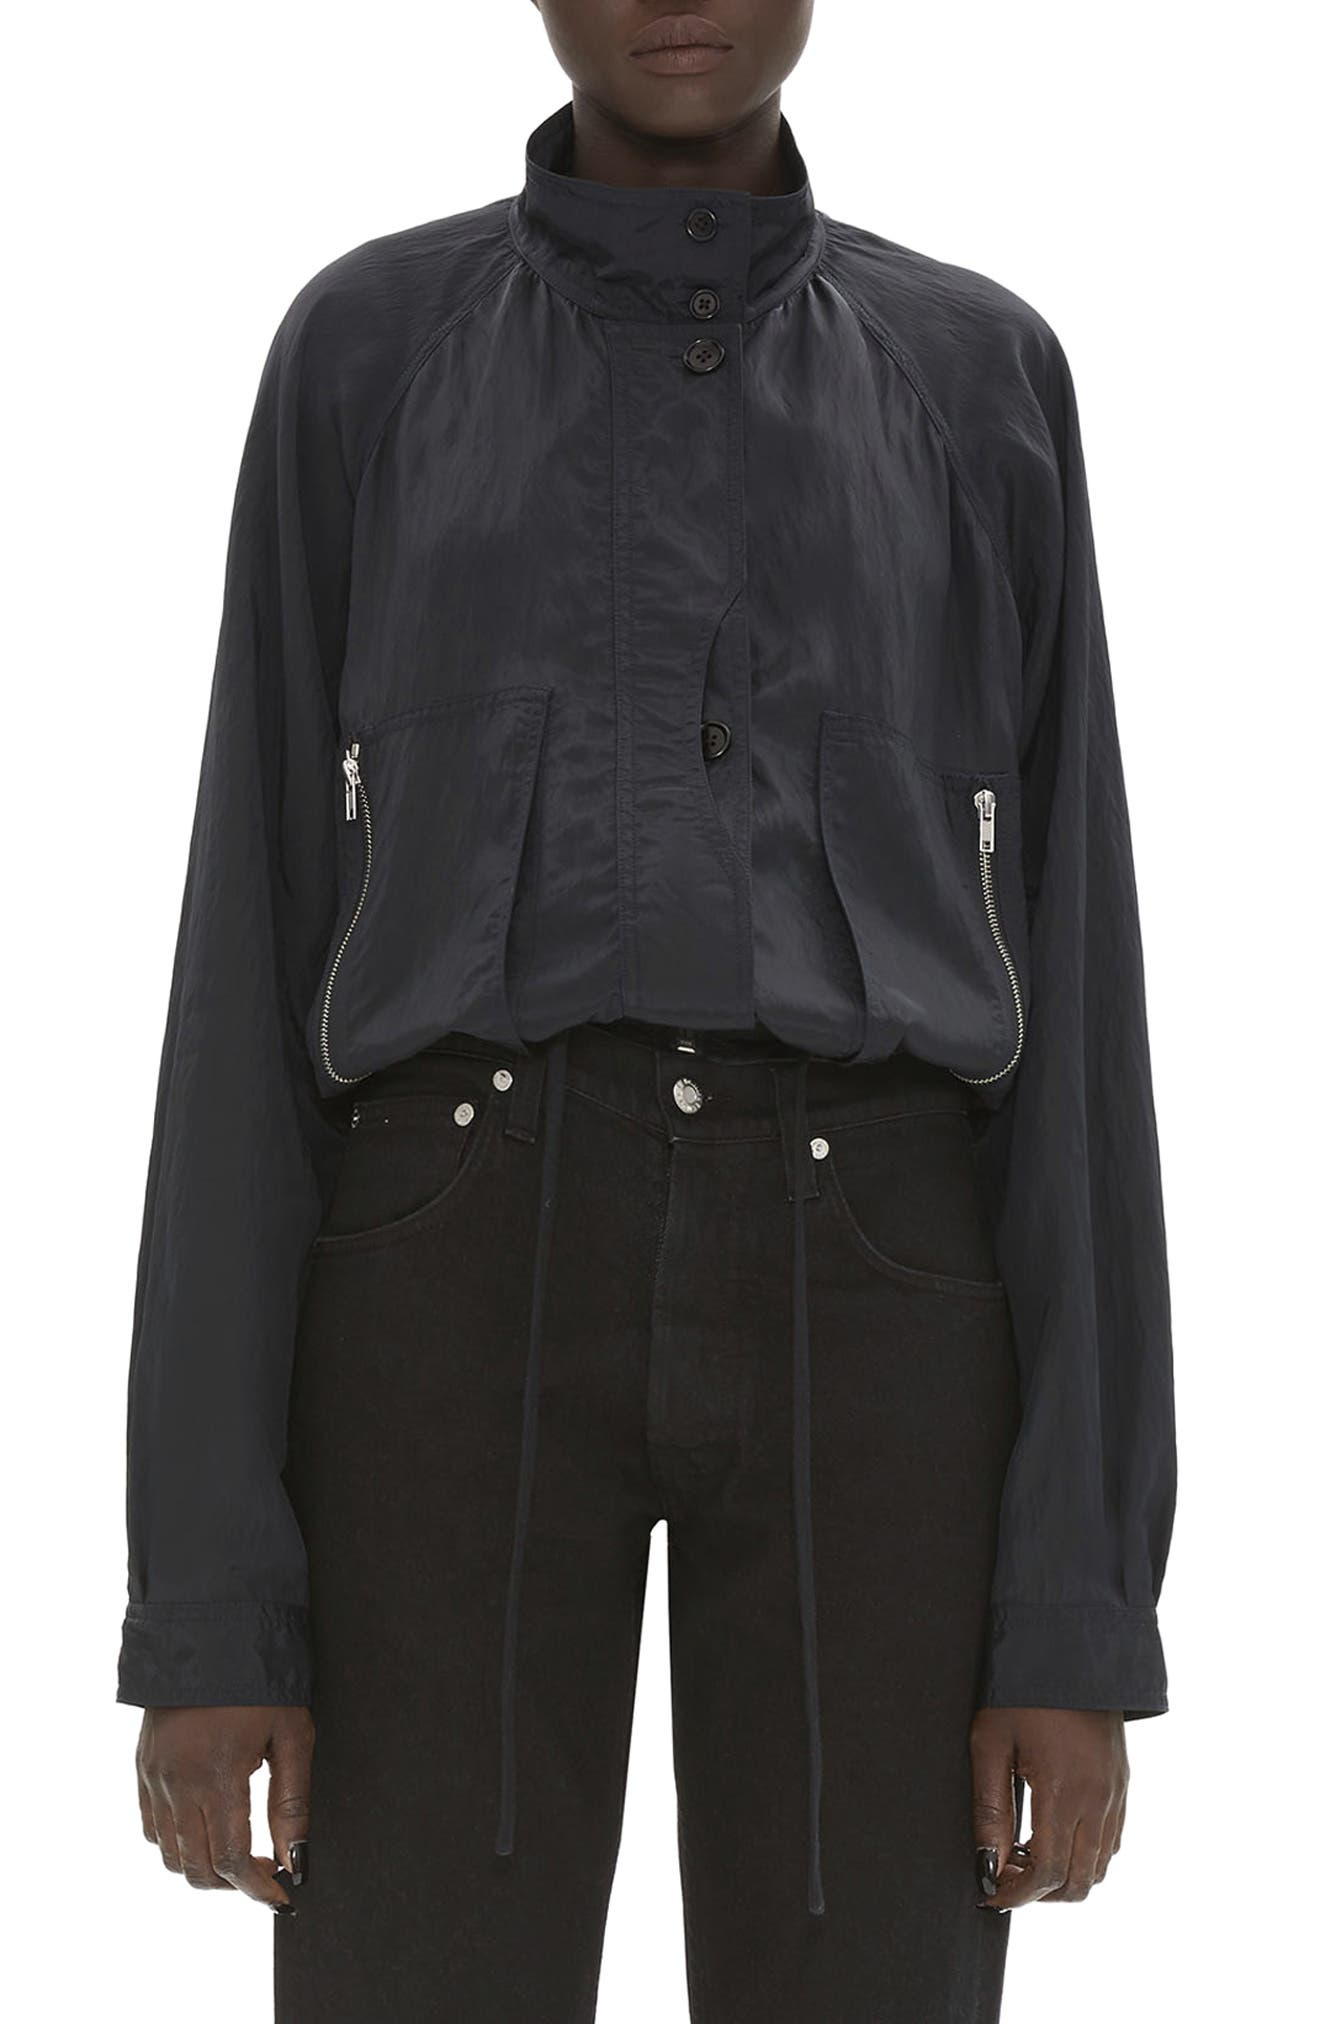 HELMUT LANG, Parachute Short Trench Jacket, Main thumbnail 1, color, BLACK